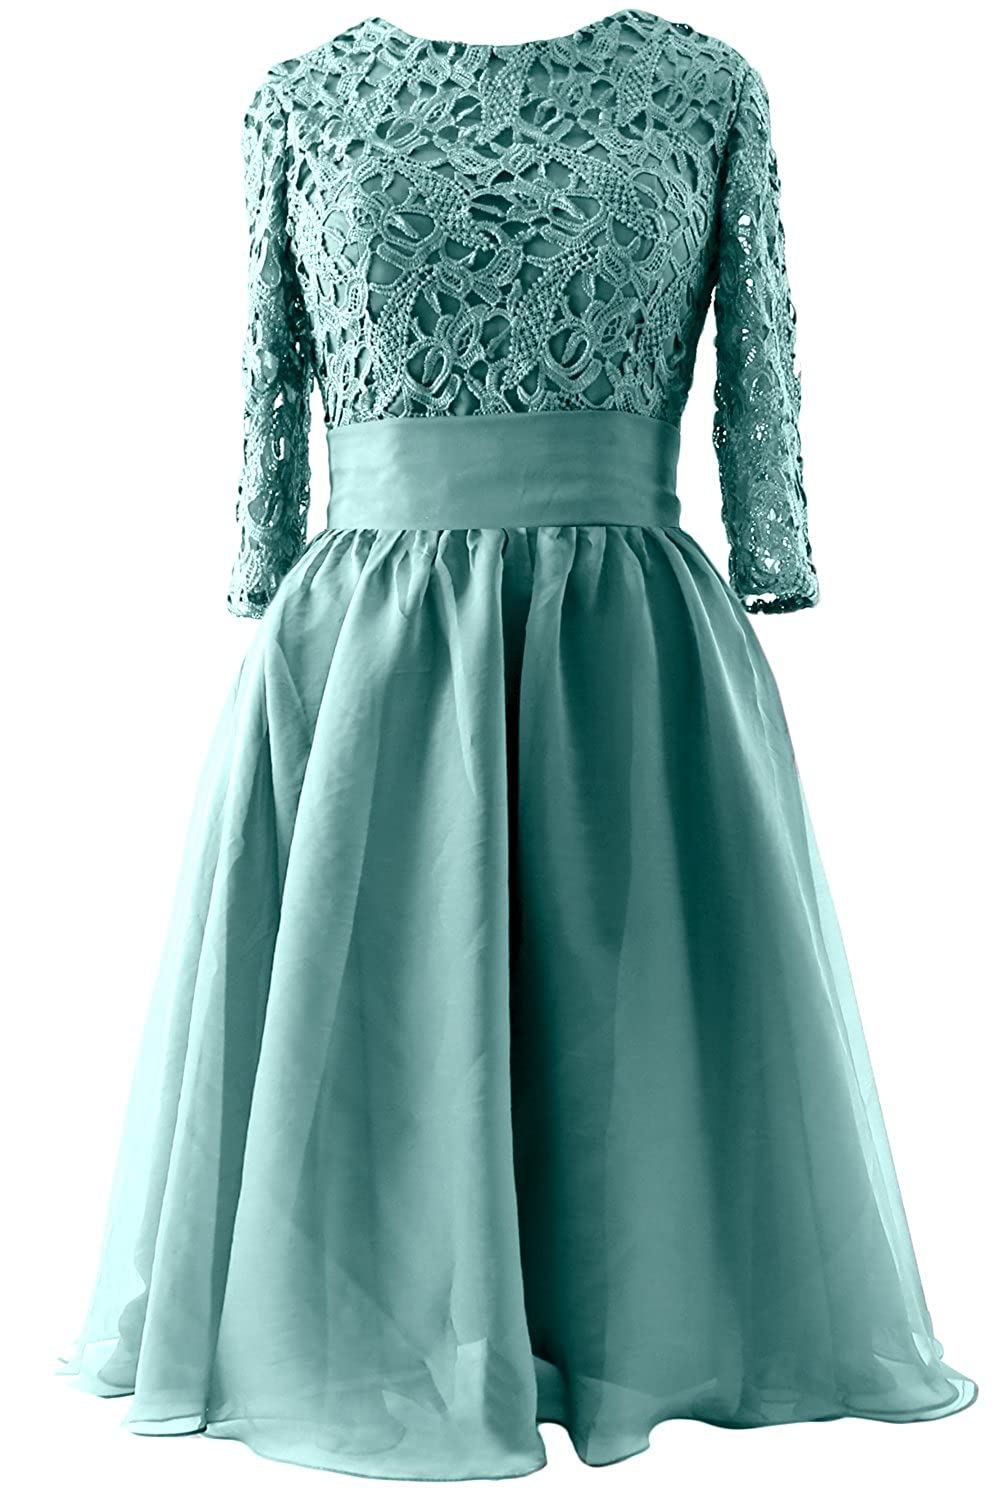 MACloth Women Half Sleeve Lace Short Mother of Bride Dress Formal Evening Gown